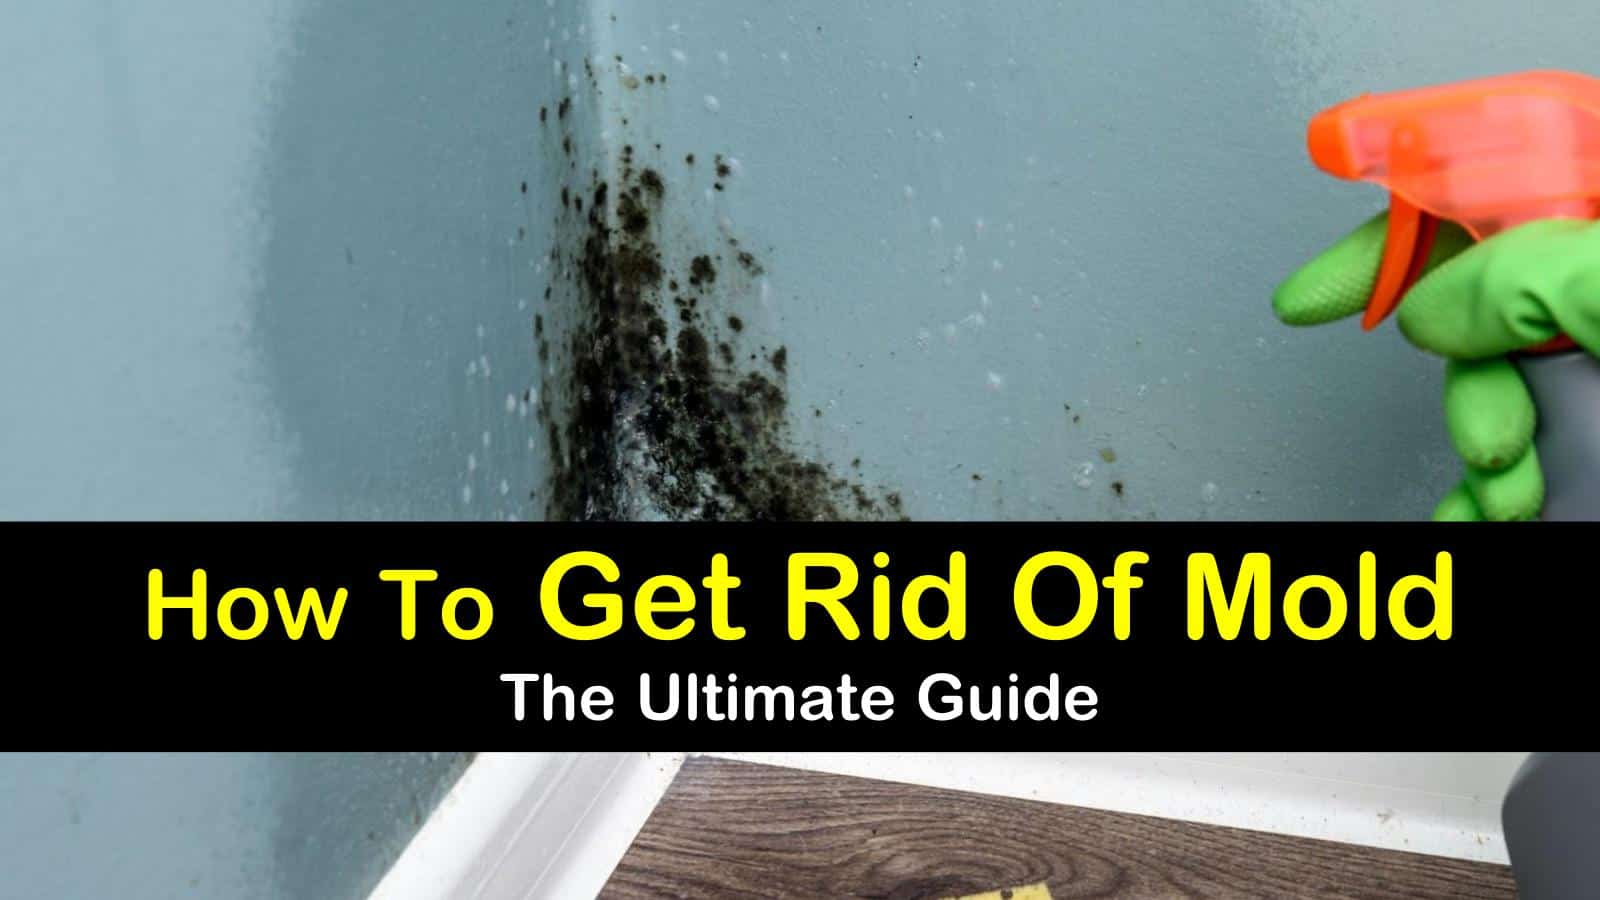 how to get rid of mold titleimg1